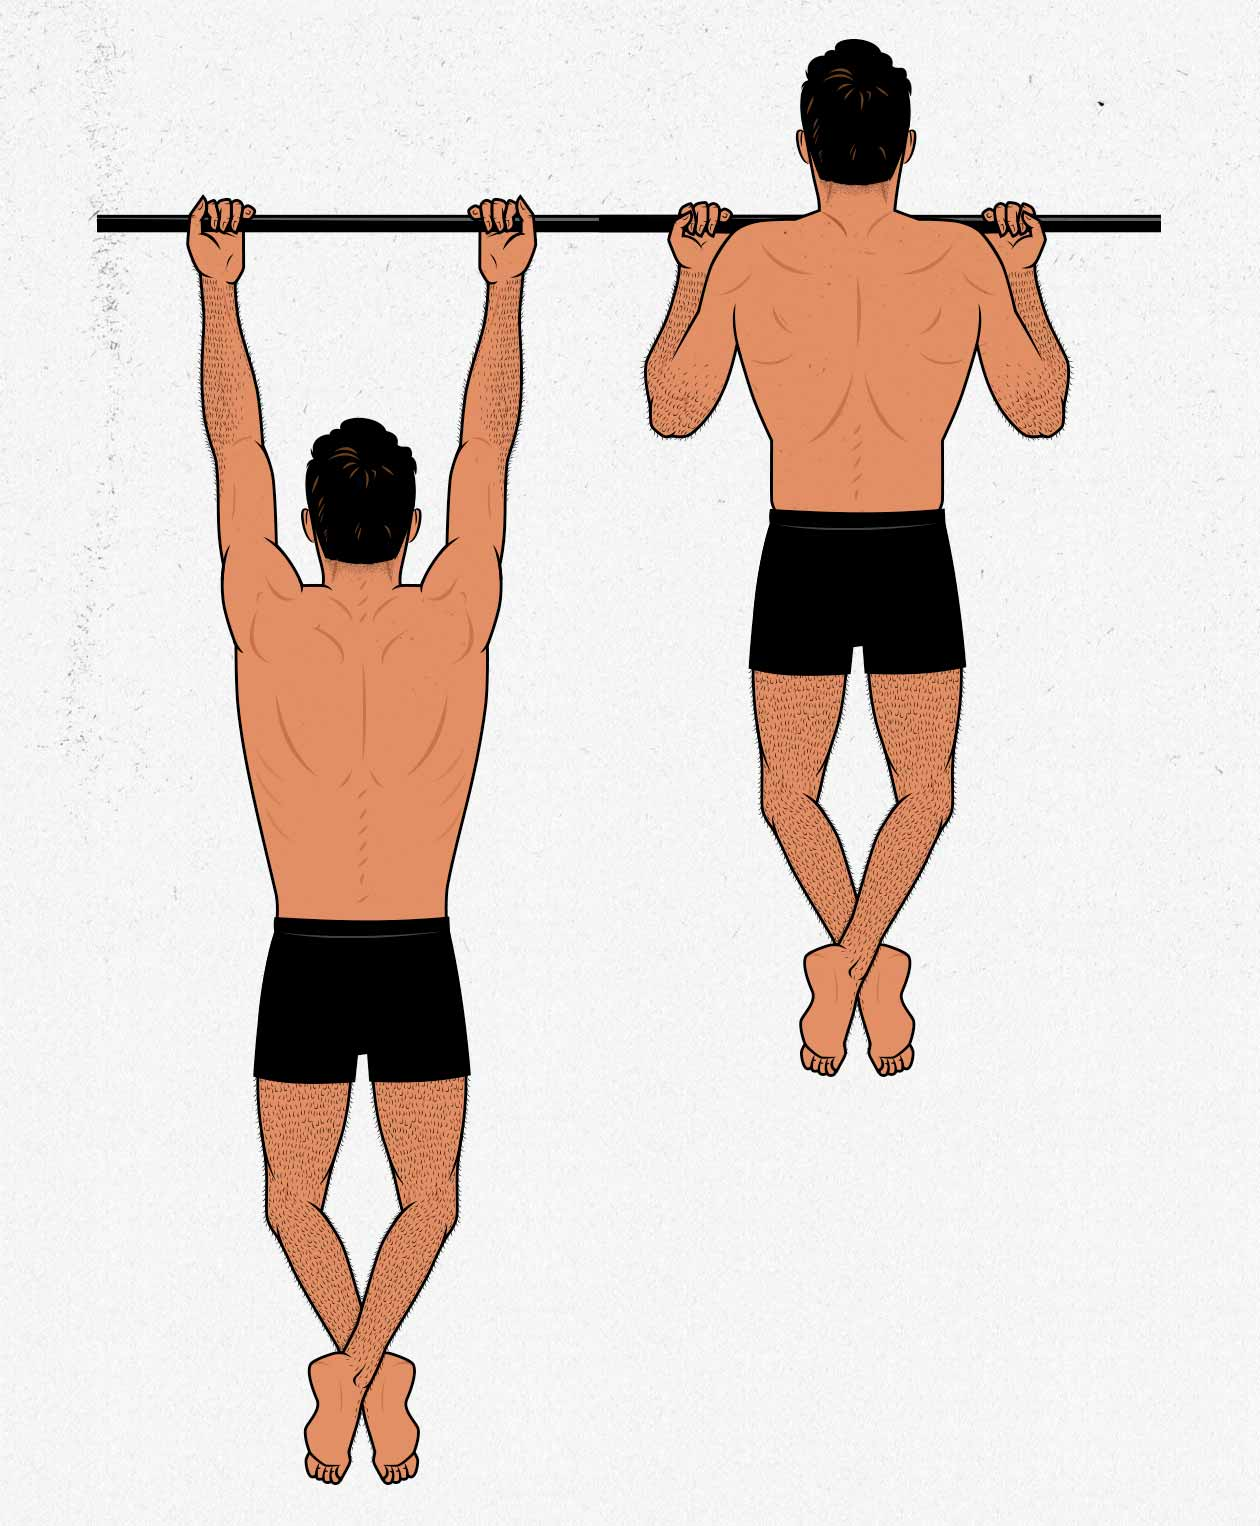 Illustration of a skinny ectomorph doing an underhand chin-up.